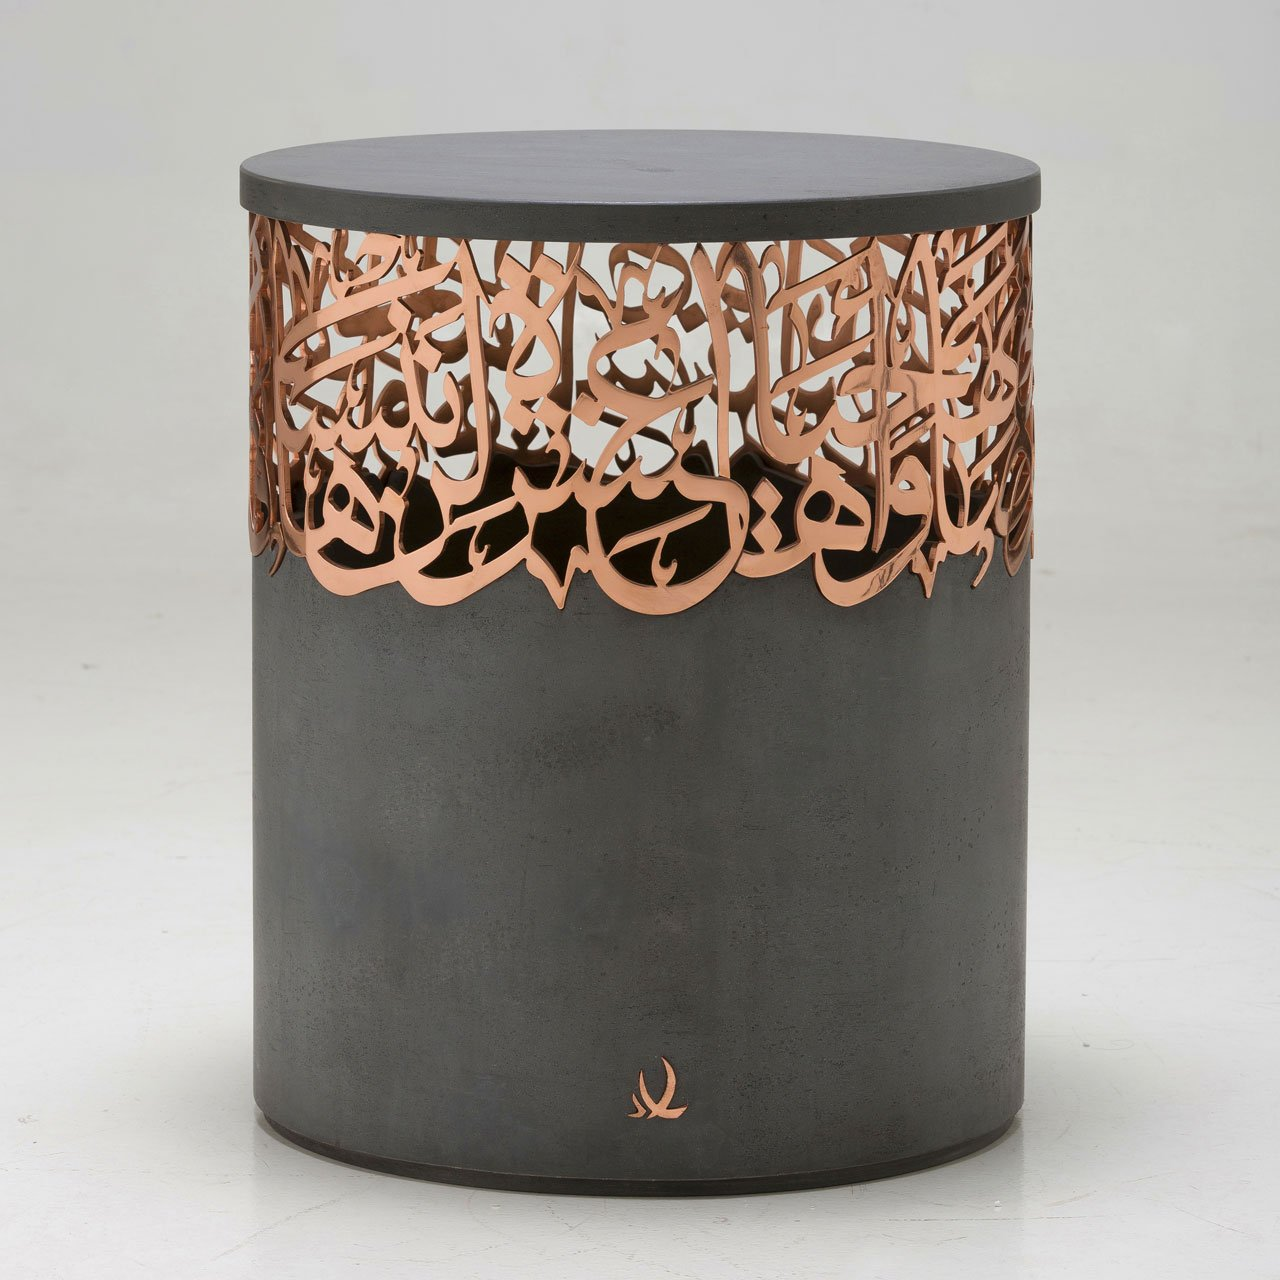 Beirut-based Iyad Naja explored the reinvention of the table/stool at o'de rose boutique in Dubai.